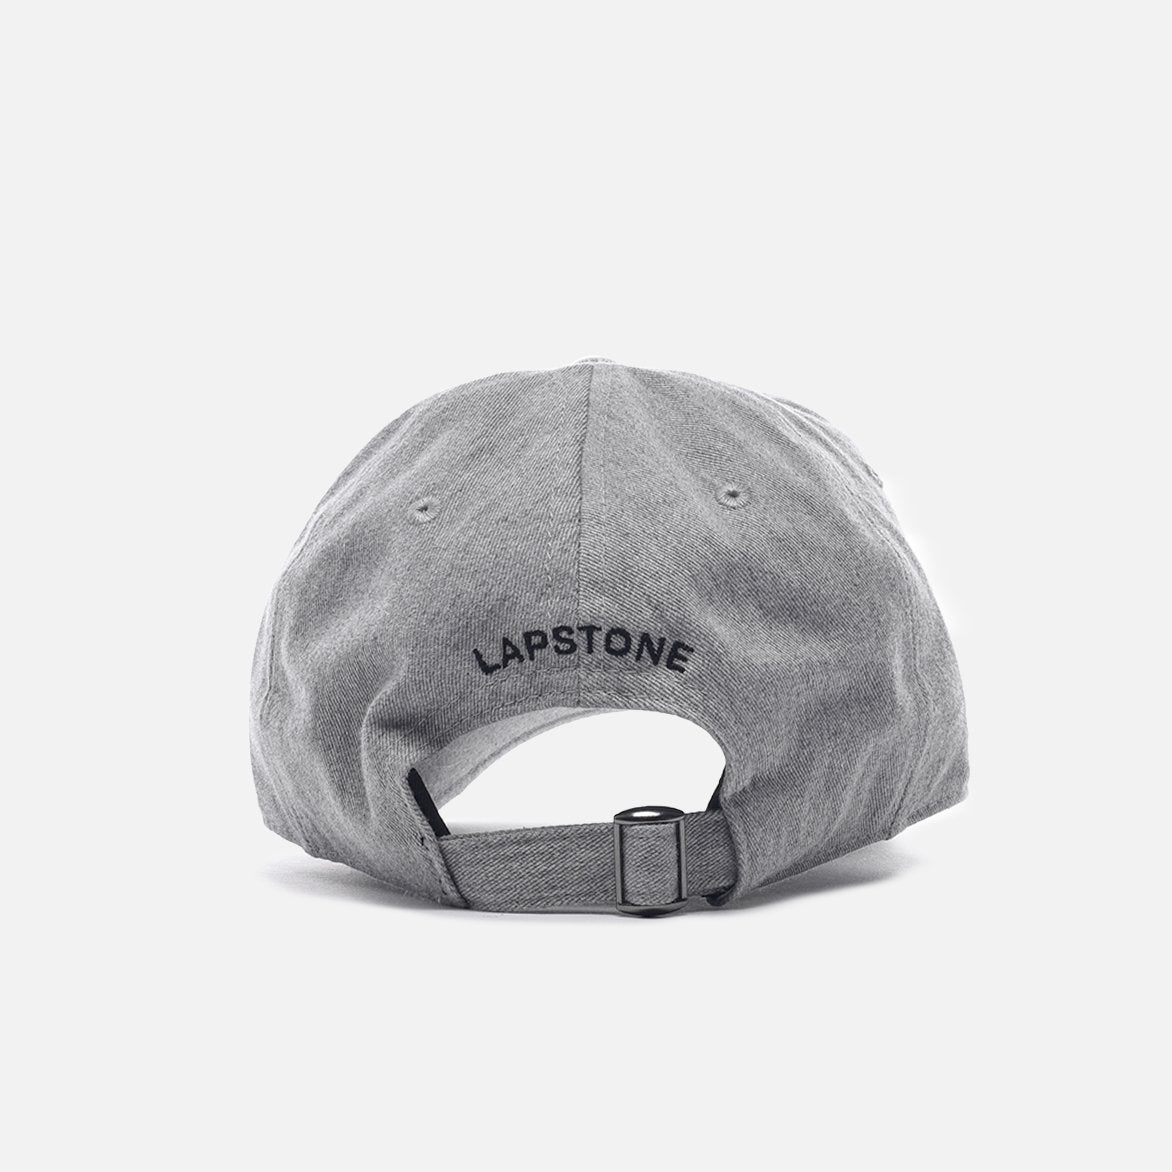 LAPSTONE SIGNATURE 6 PANEL CAP - GREY